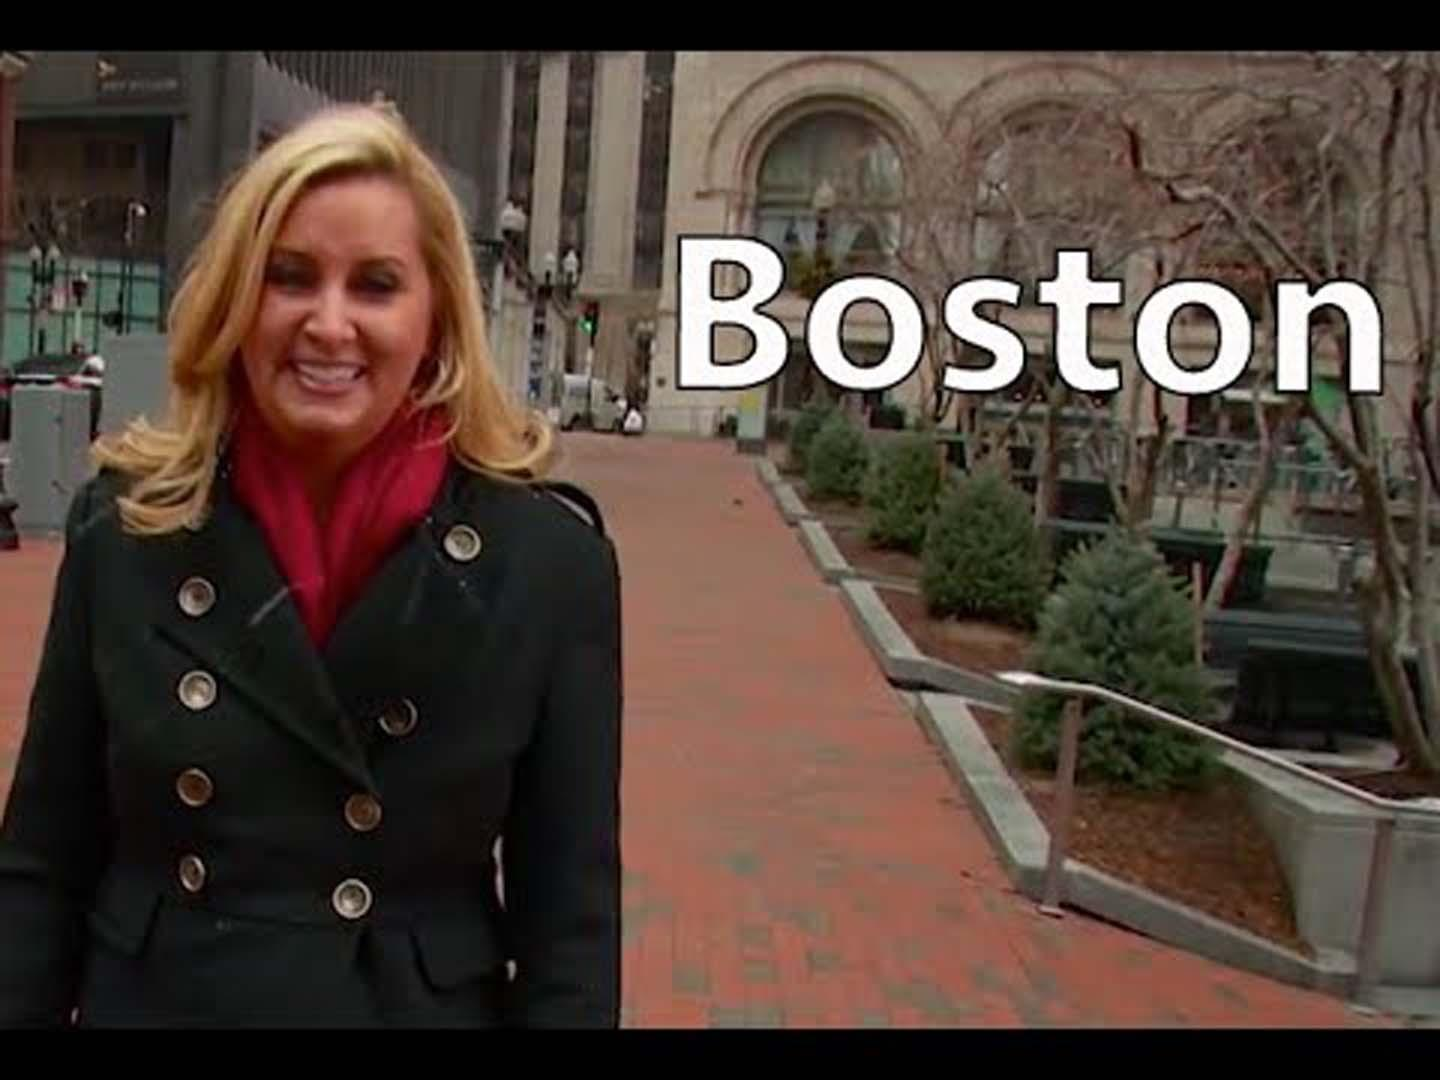 Boston – One If By Land, Two If By Sea